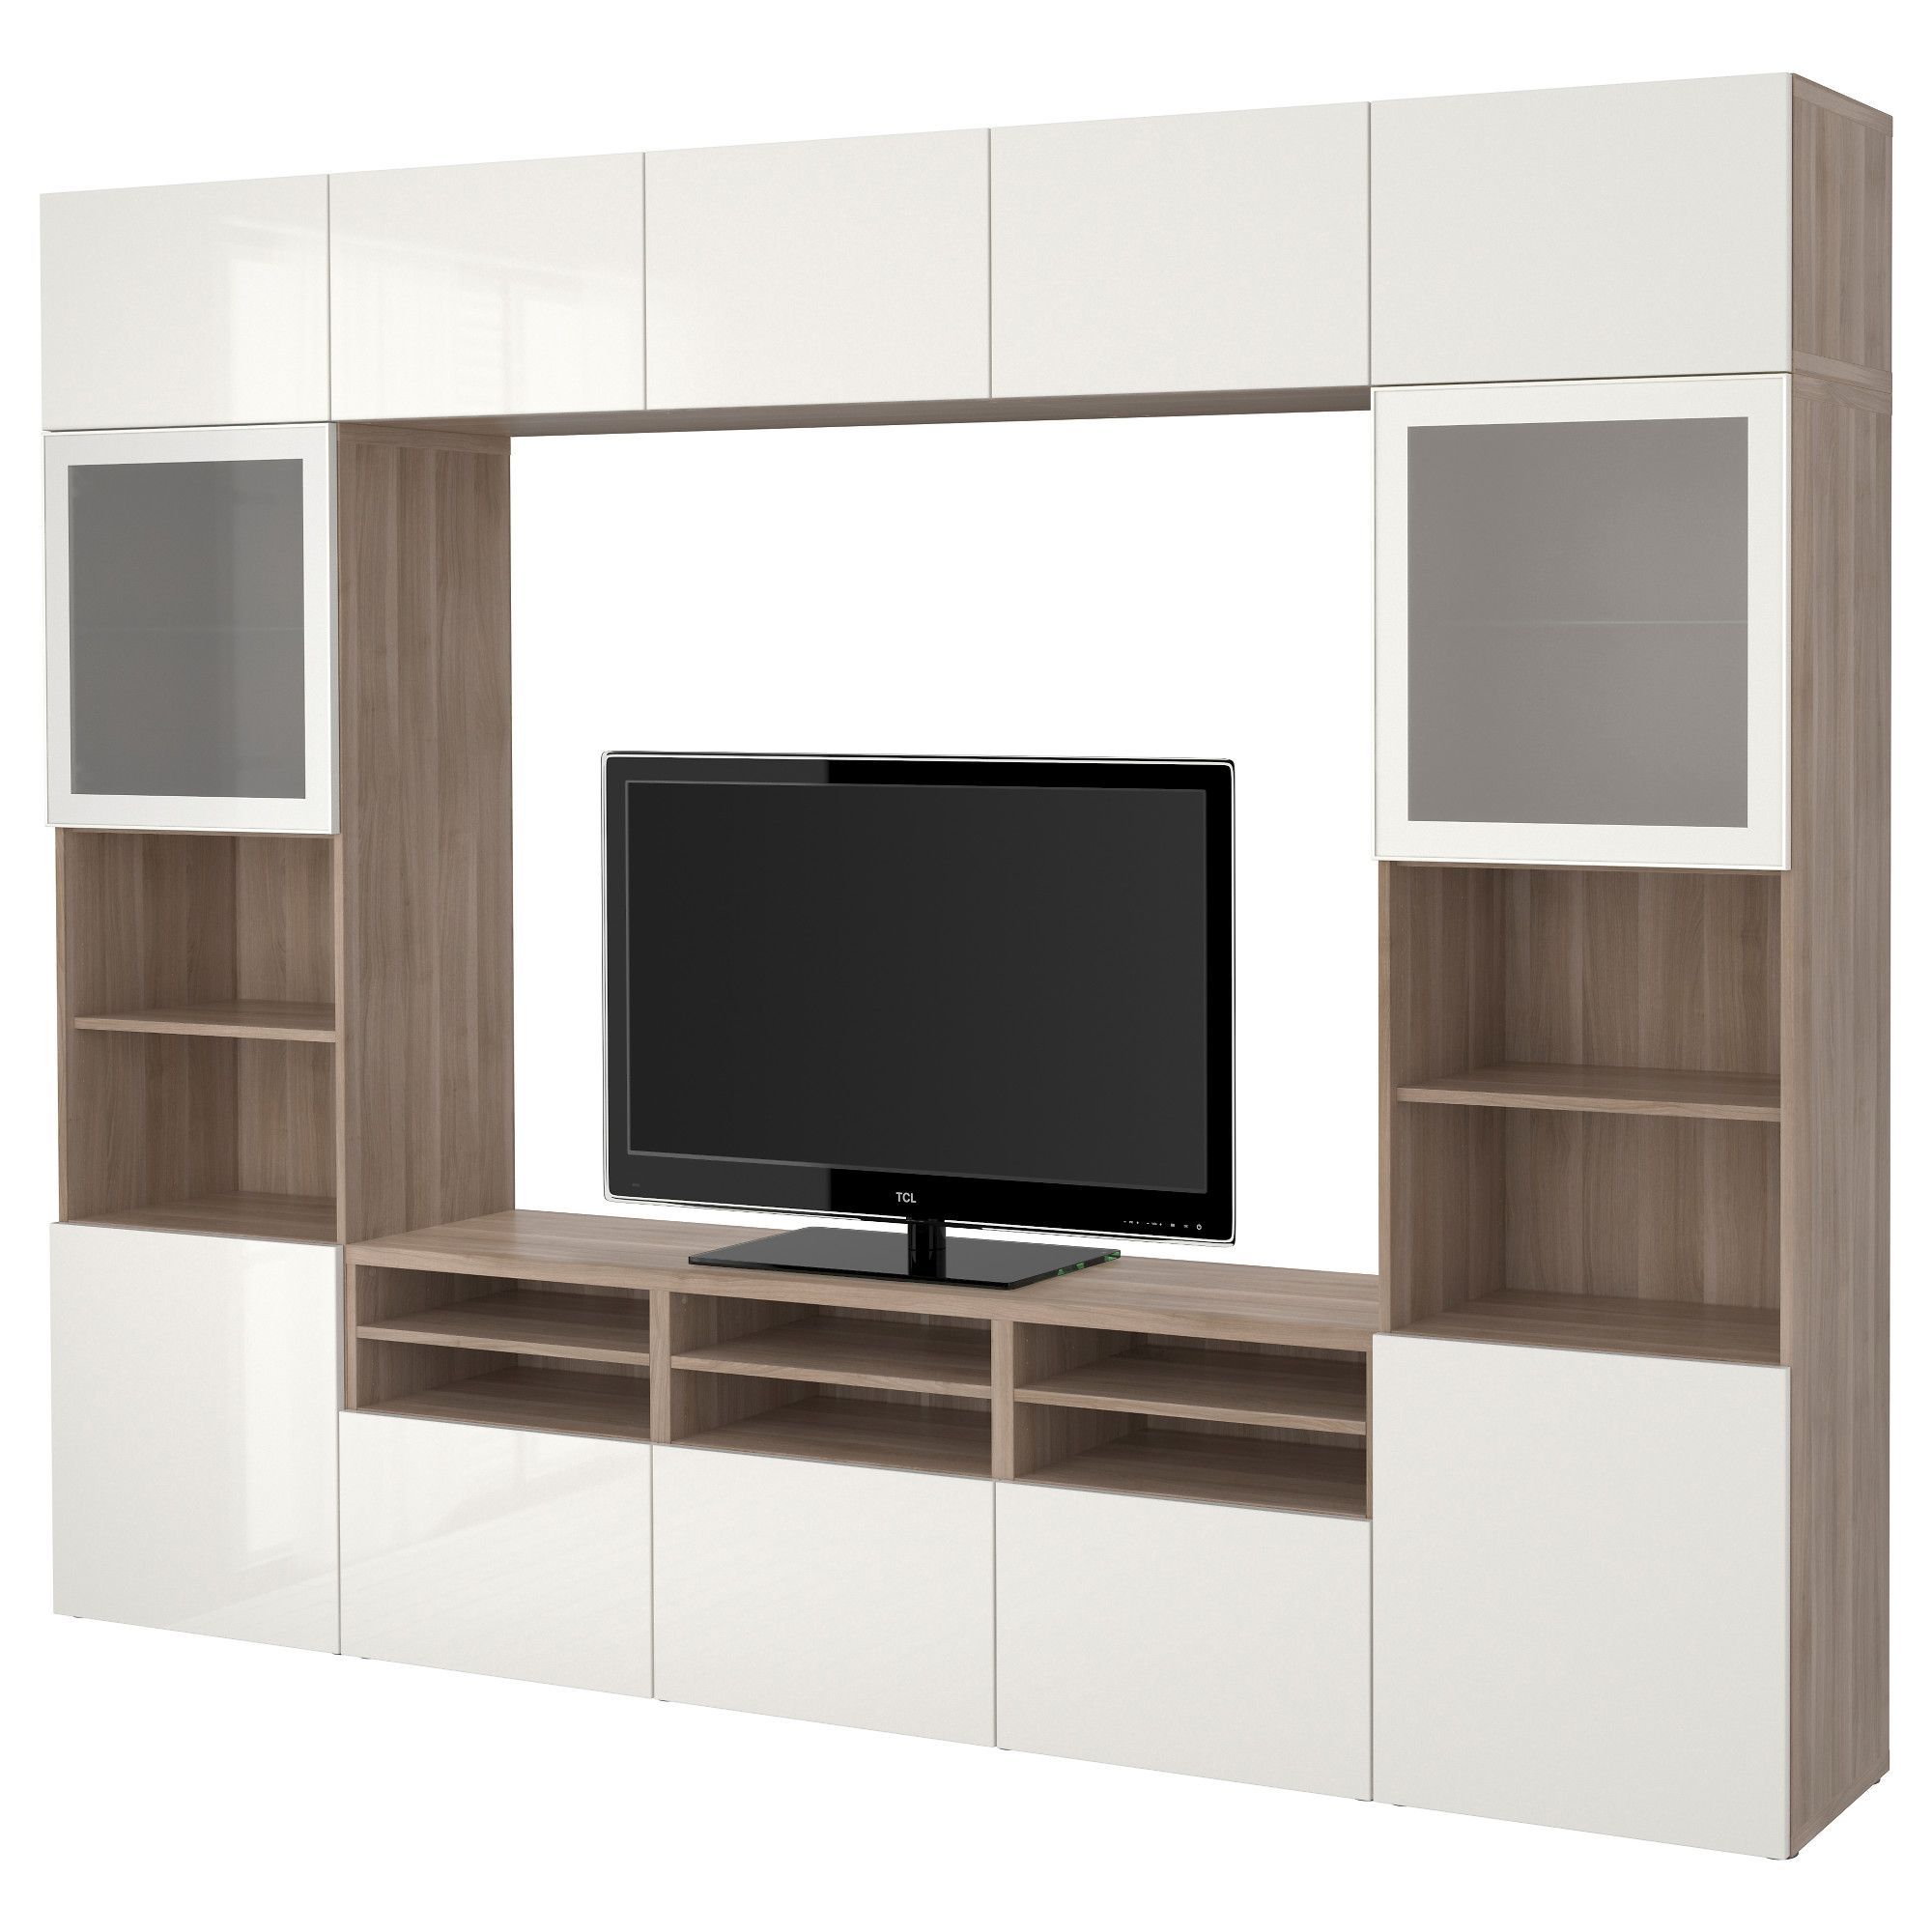 Ikea Muebles Modulares BestÅ Tv Storage Combination Glass Doors Walnut Effect Light Gray